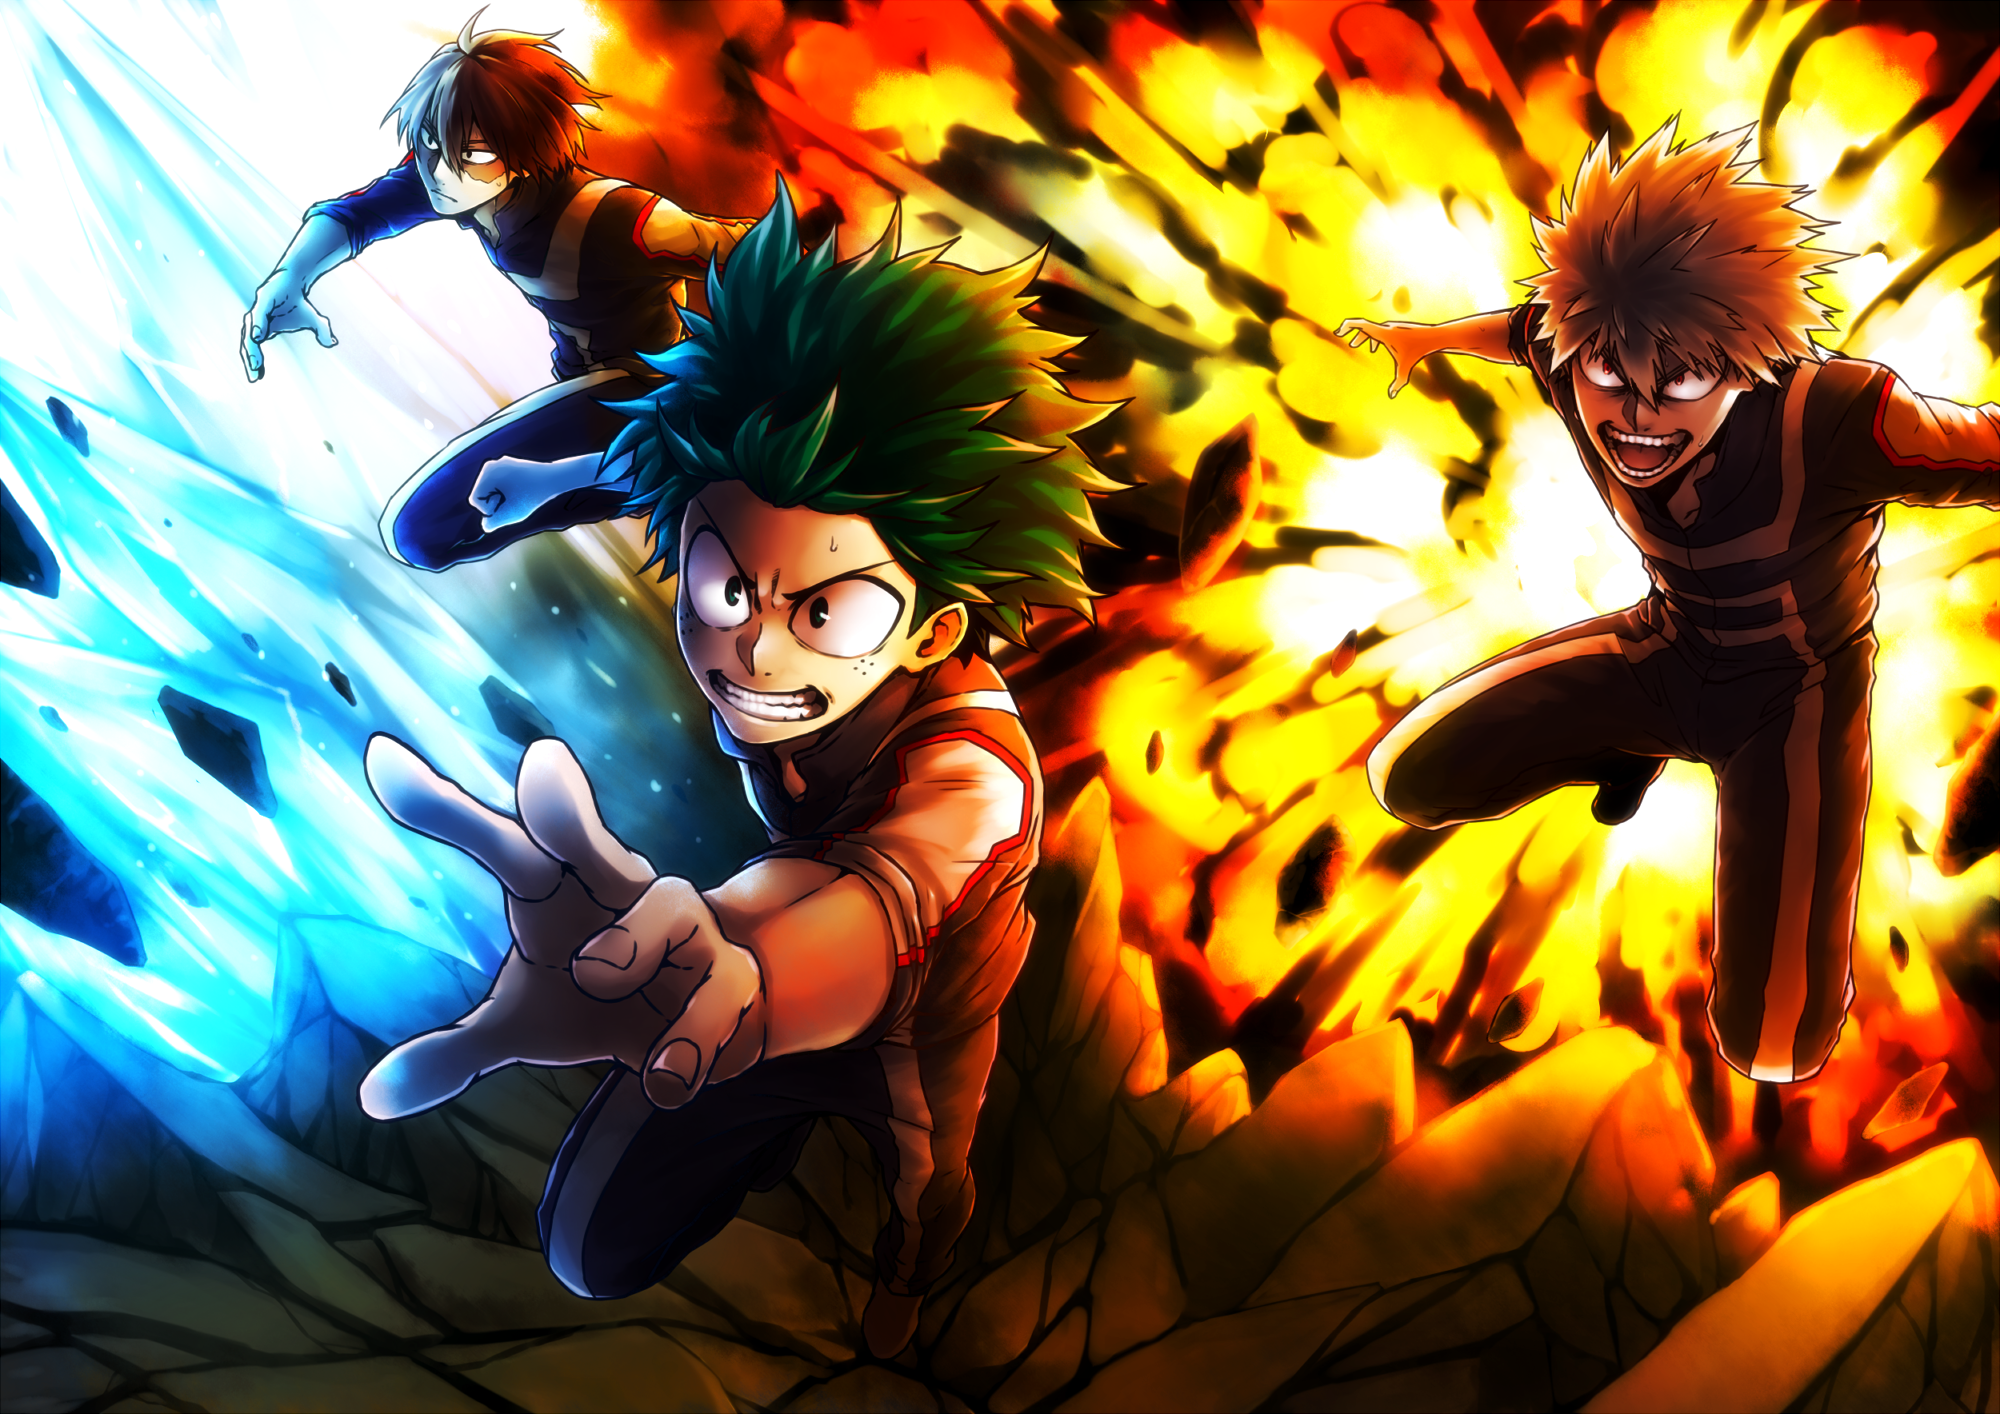 26 My Hero Academia HD Wallpapers  Backgrounds  Wallpaper Abyss